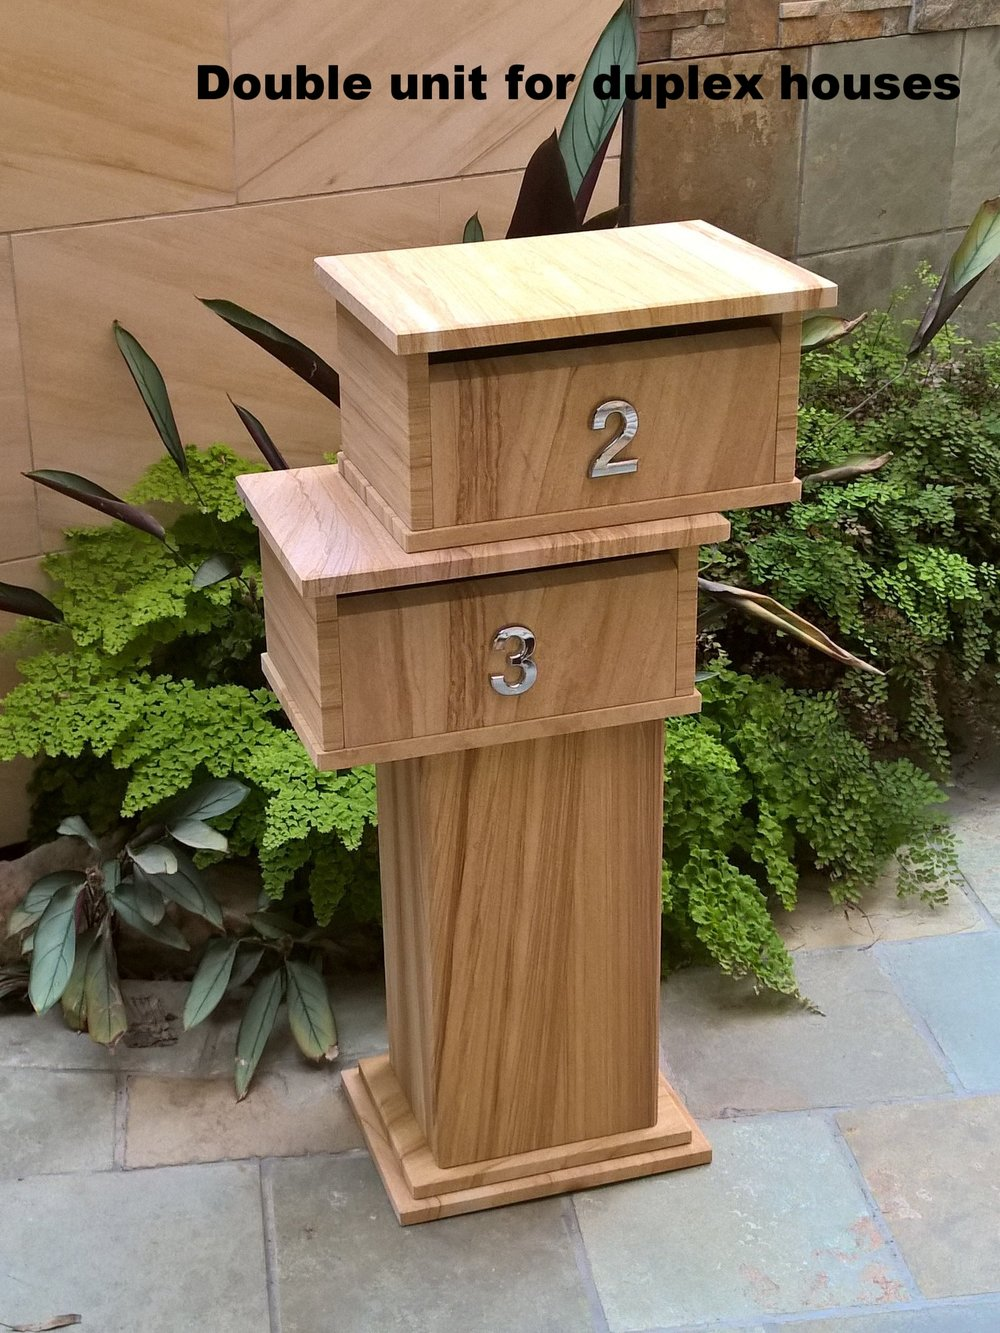 Dual Sandstone letterbox about 1000mm high fit A4 envelopes. Cost $520